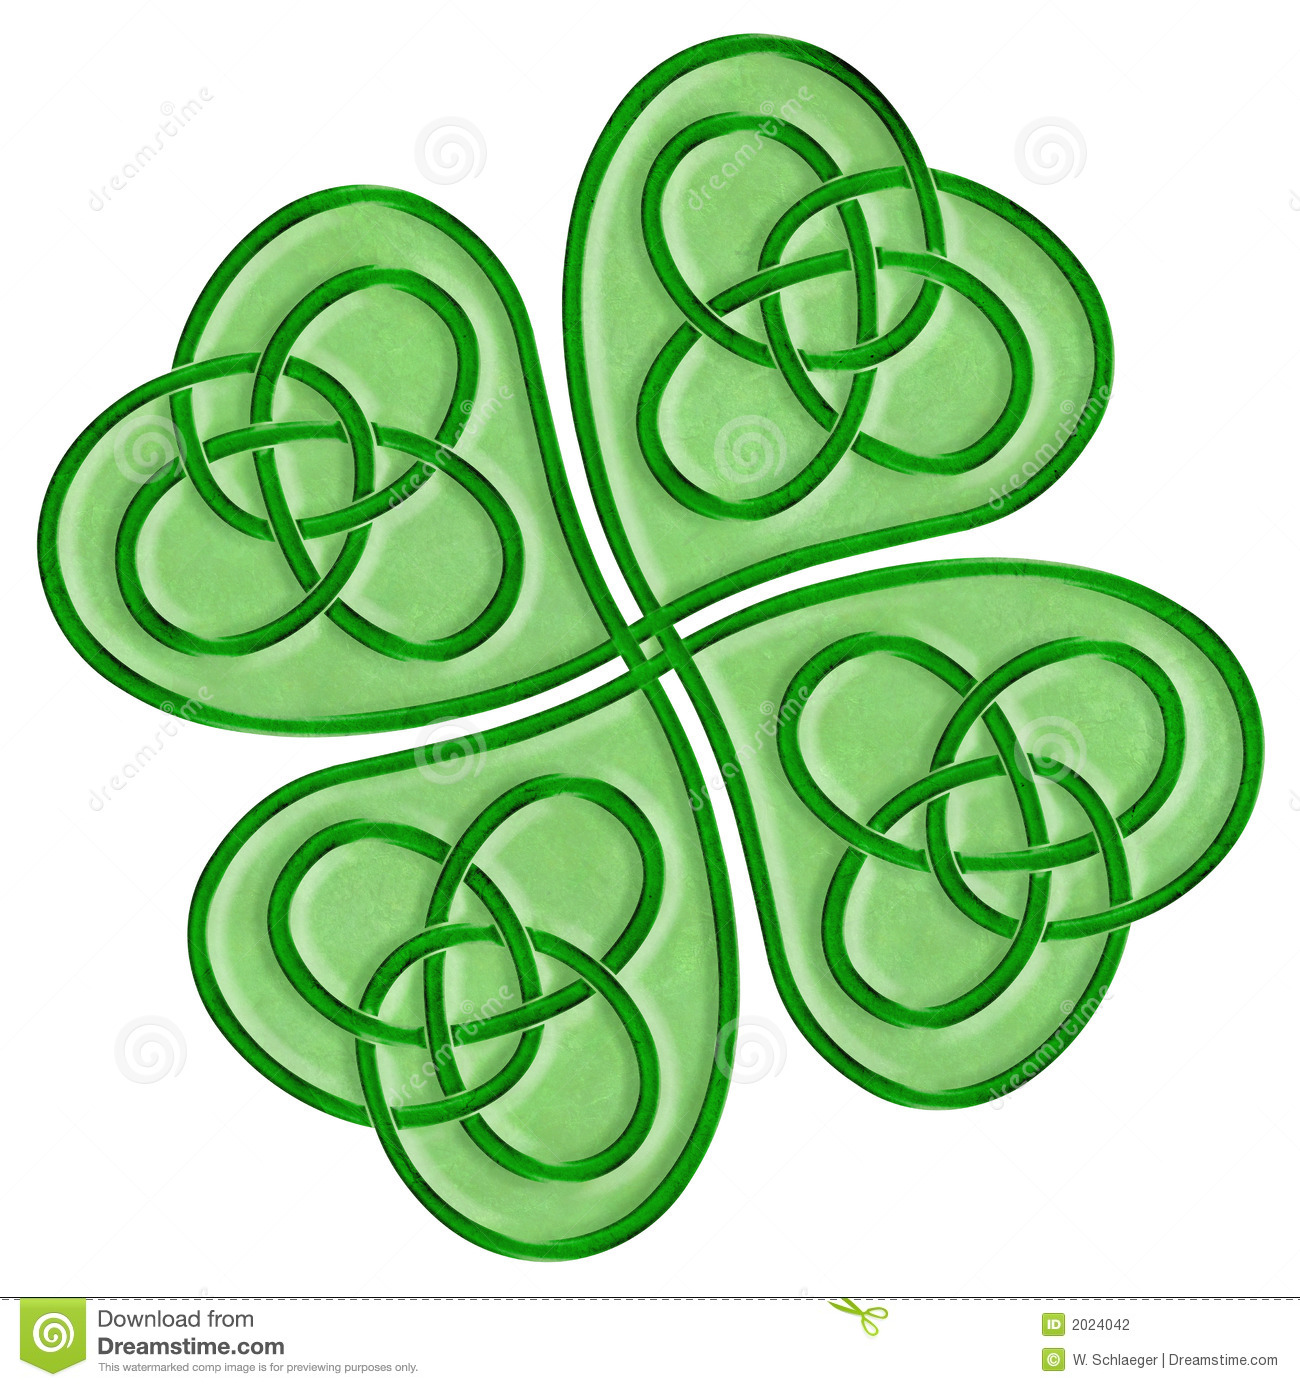 shamrock dating Explore irish pride and culture with the top 50 best shamrock tattoo designs for men discover cool three-leaf irish inspired ink ideas.